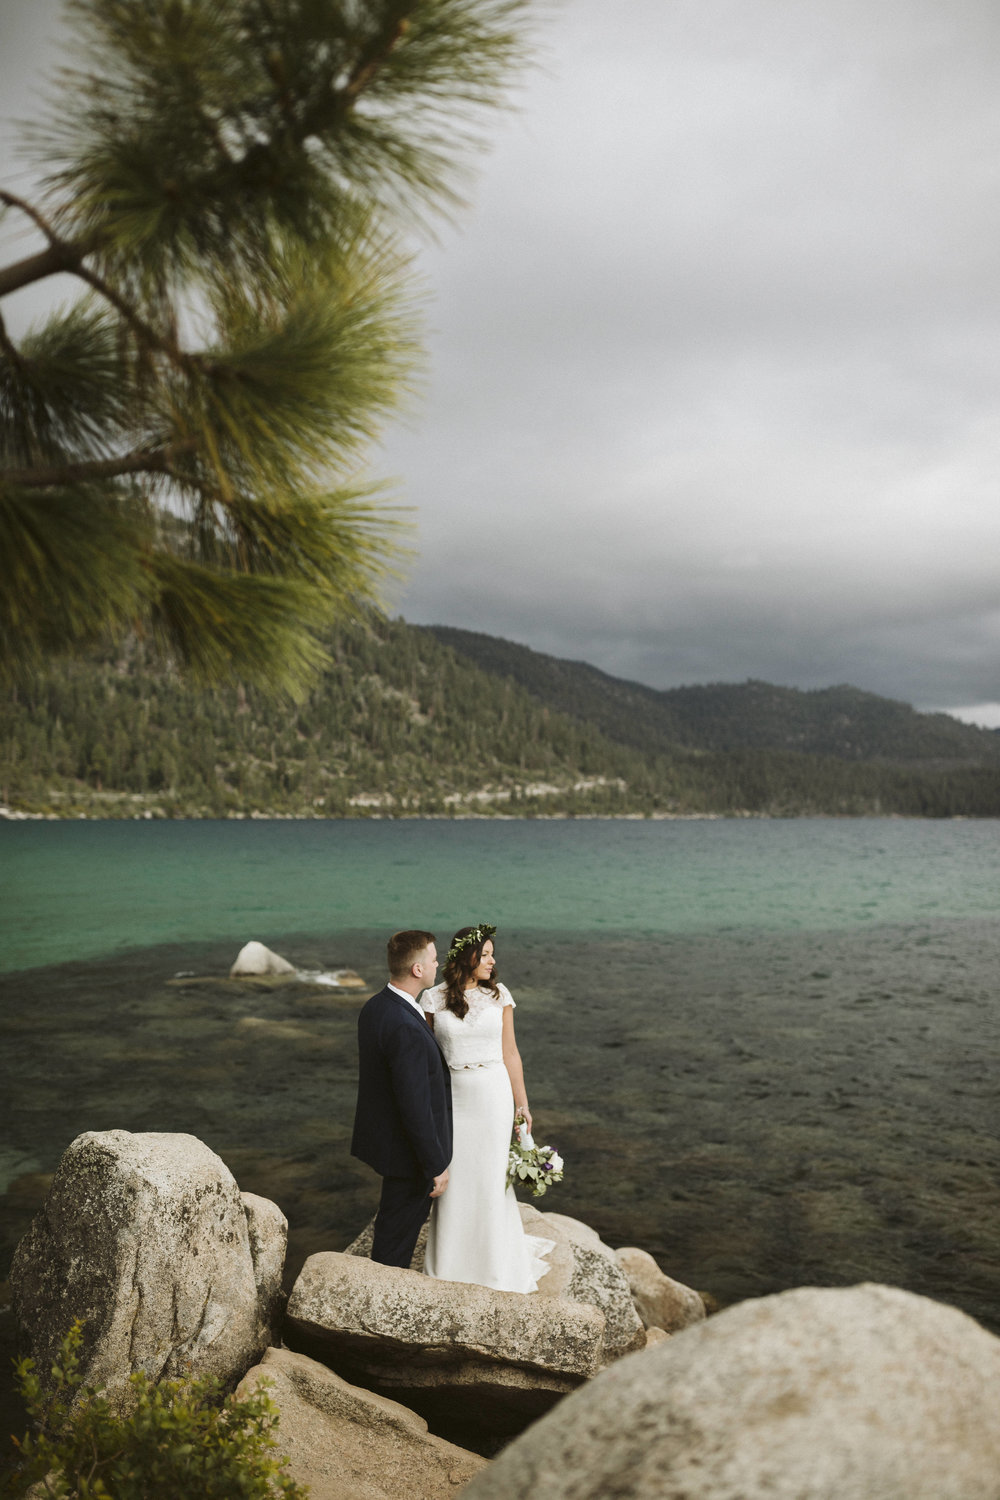 0M7A4483vildphotography-photography-wedding-weddingphotography-tahoewedding-tahoeweddingphotographer-adventurewedding-jake-amy.jpg